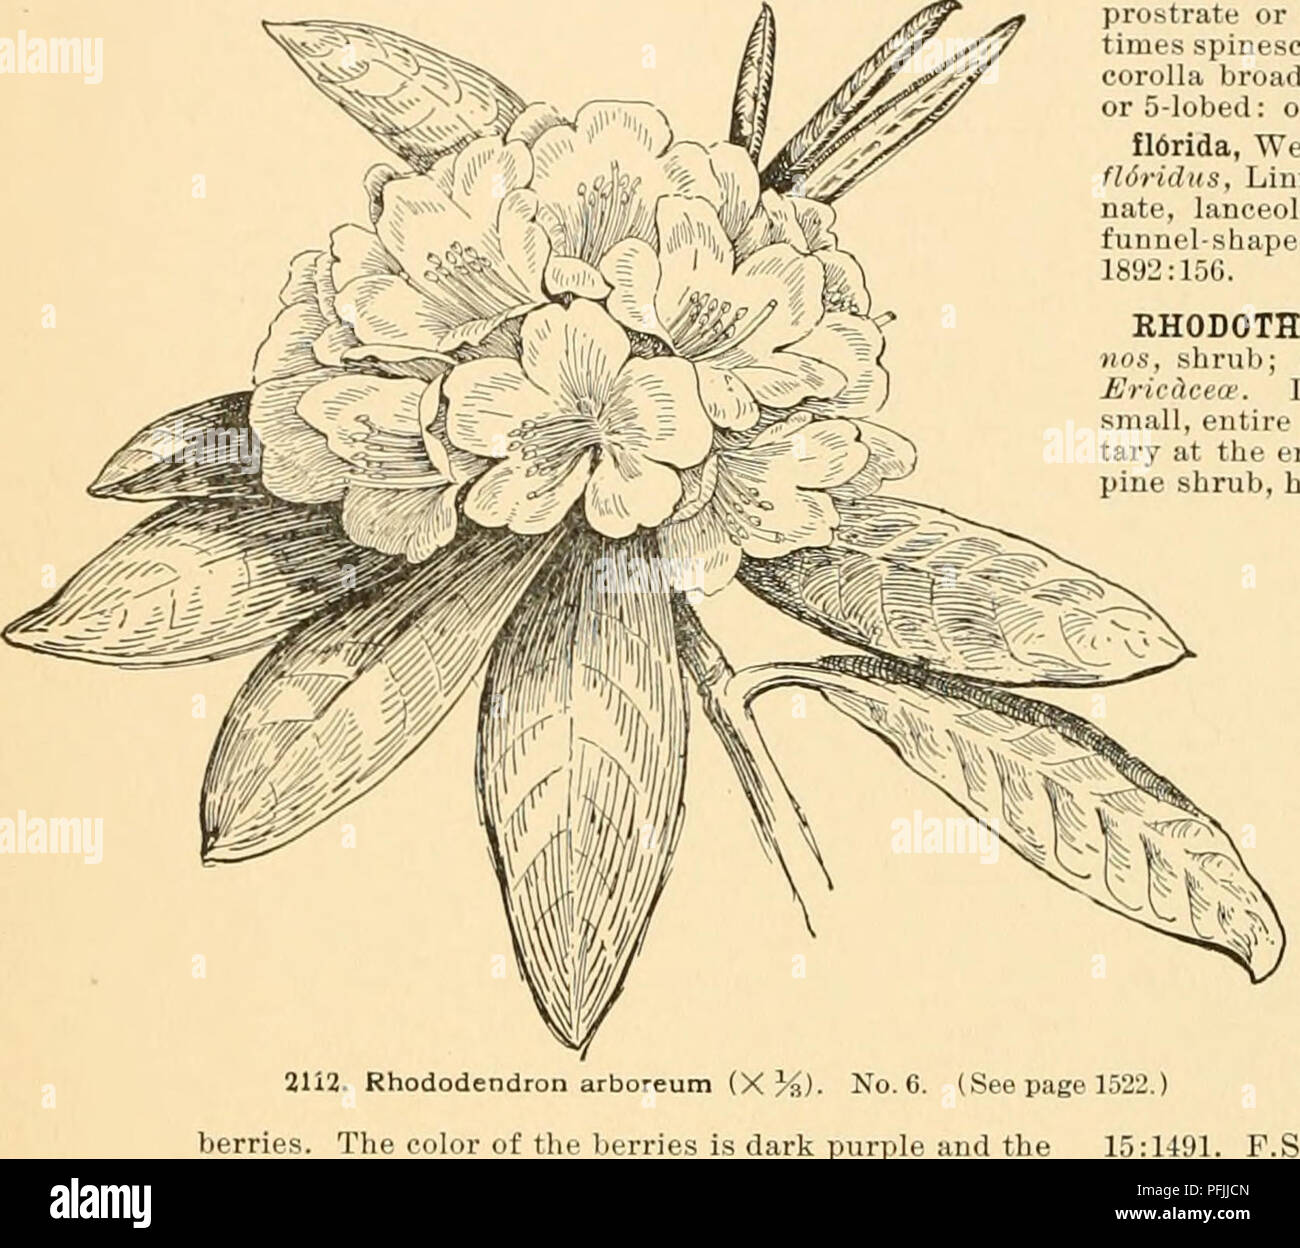 Cyclopedia of American horticulture : comprising suggestions